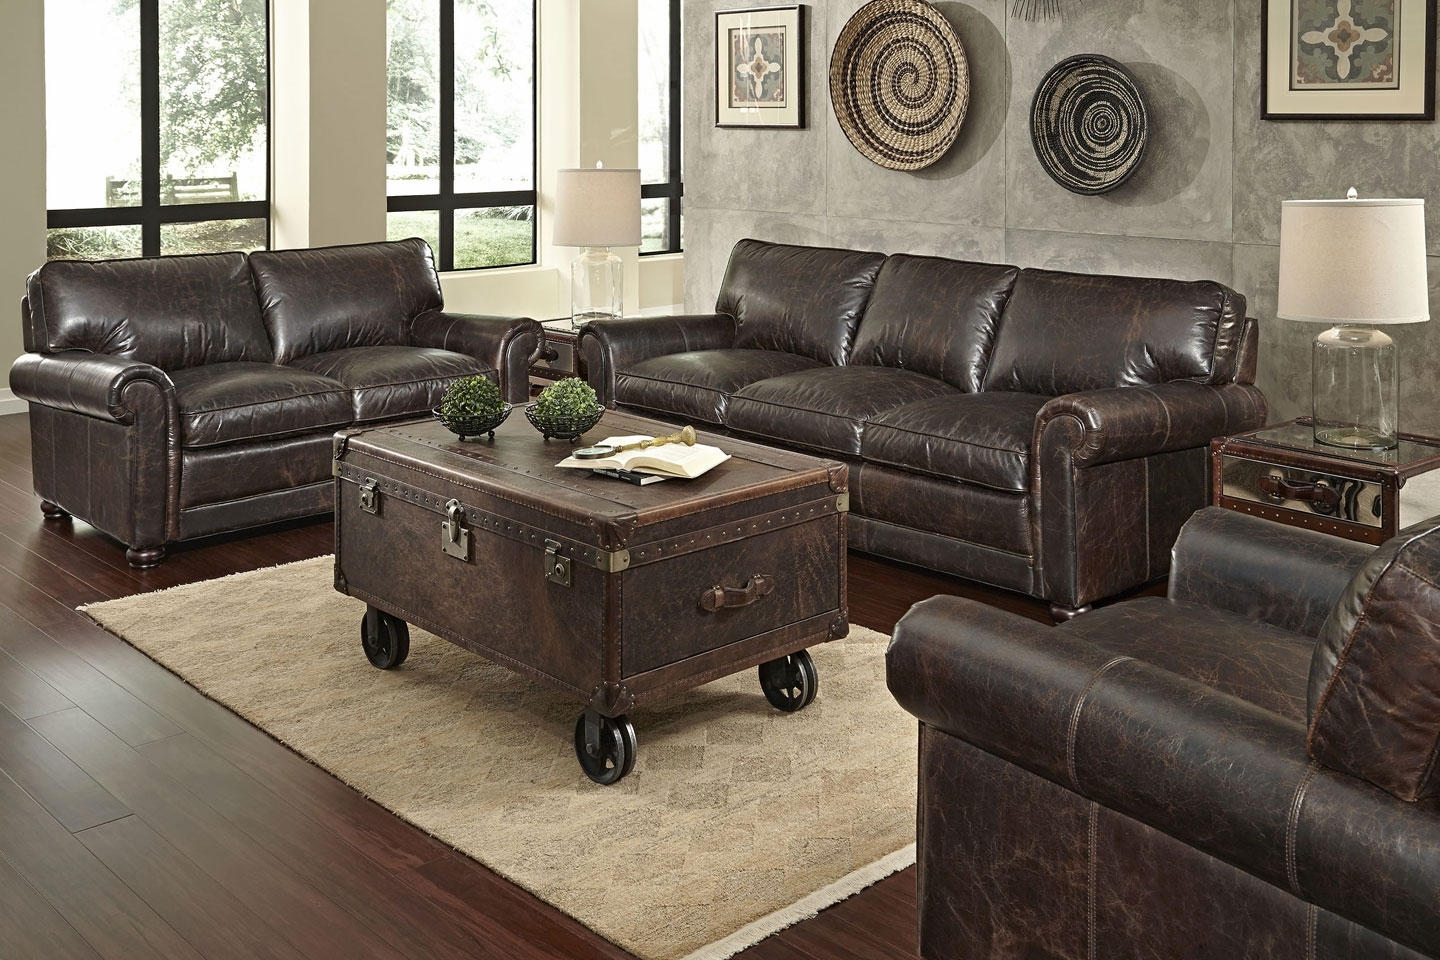 High quality sofas and chairs - Quick Ship 3 Piece Leather Sofa Loveseat Chair Set